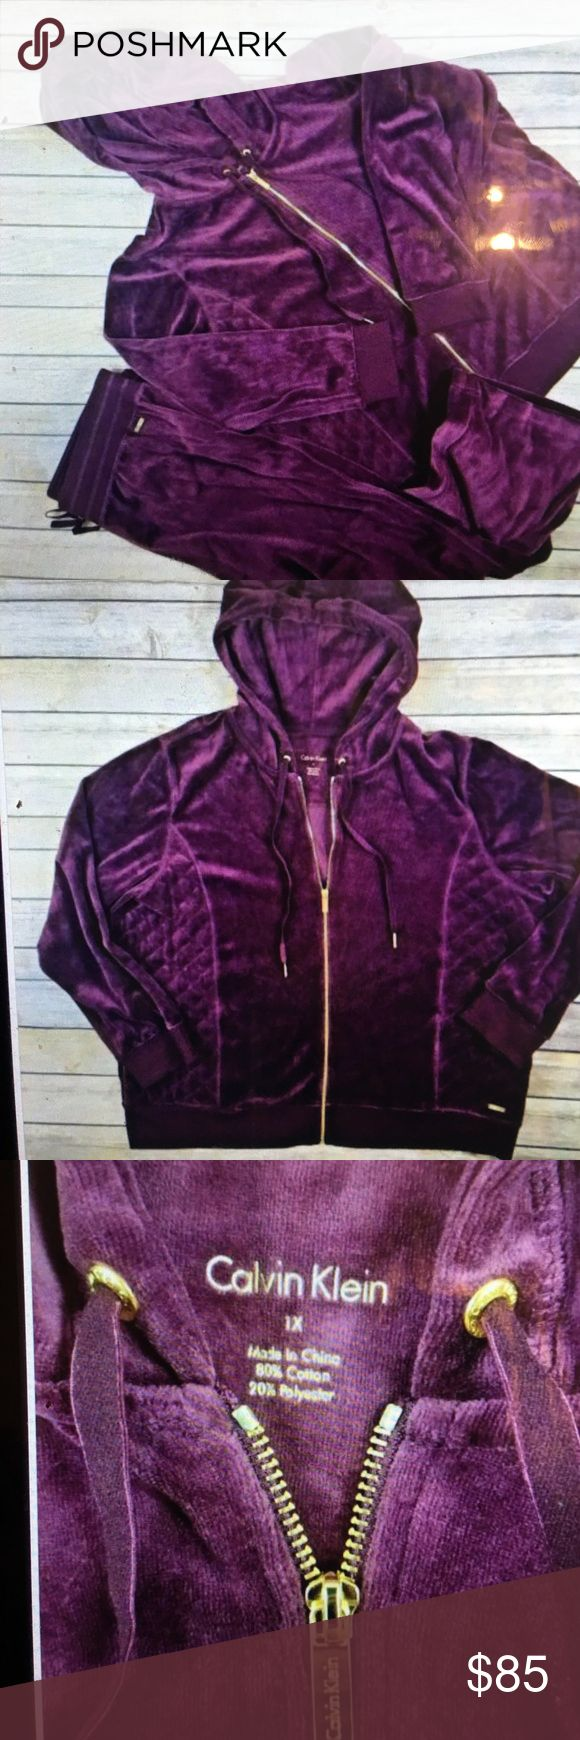 Calvin Klein Velour 1X purple hoodie Tracksuit New:  Pants has tag attached but Jacket does not. : Velour Hoodie tracksuit.  Women size 1 X Brand: Calvin Klein. purple Velour tracksuit includes pants and zip up hoodie jacket. Calvin Klein Pants Jumpsuits & Rompers